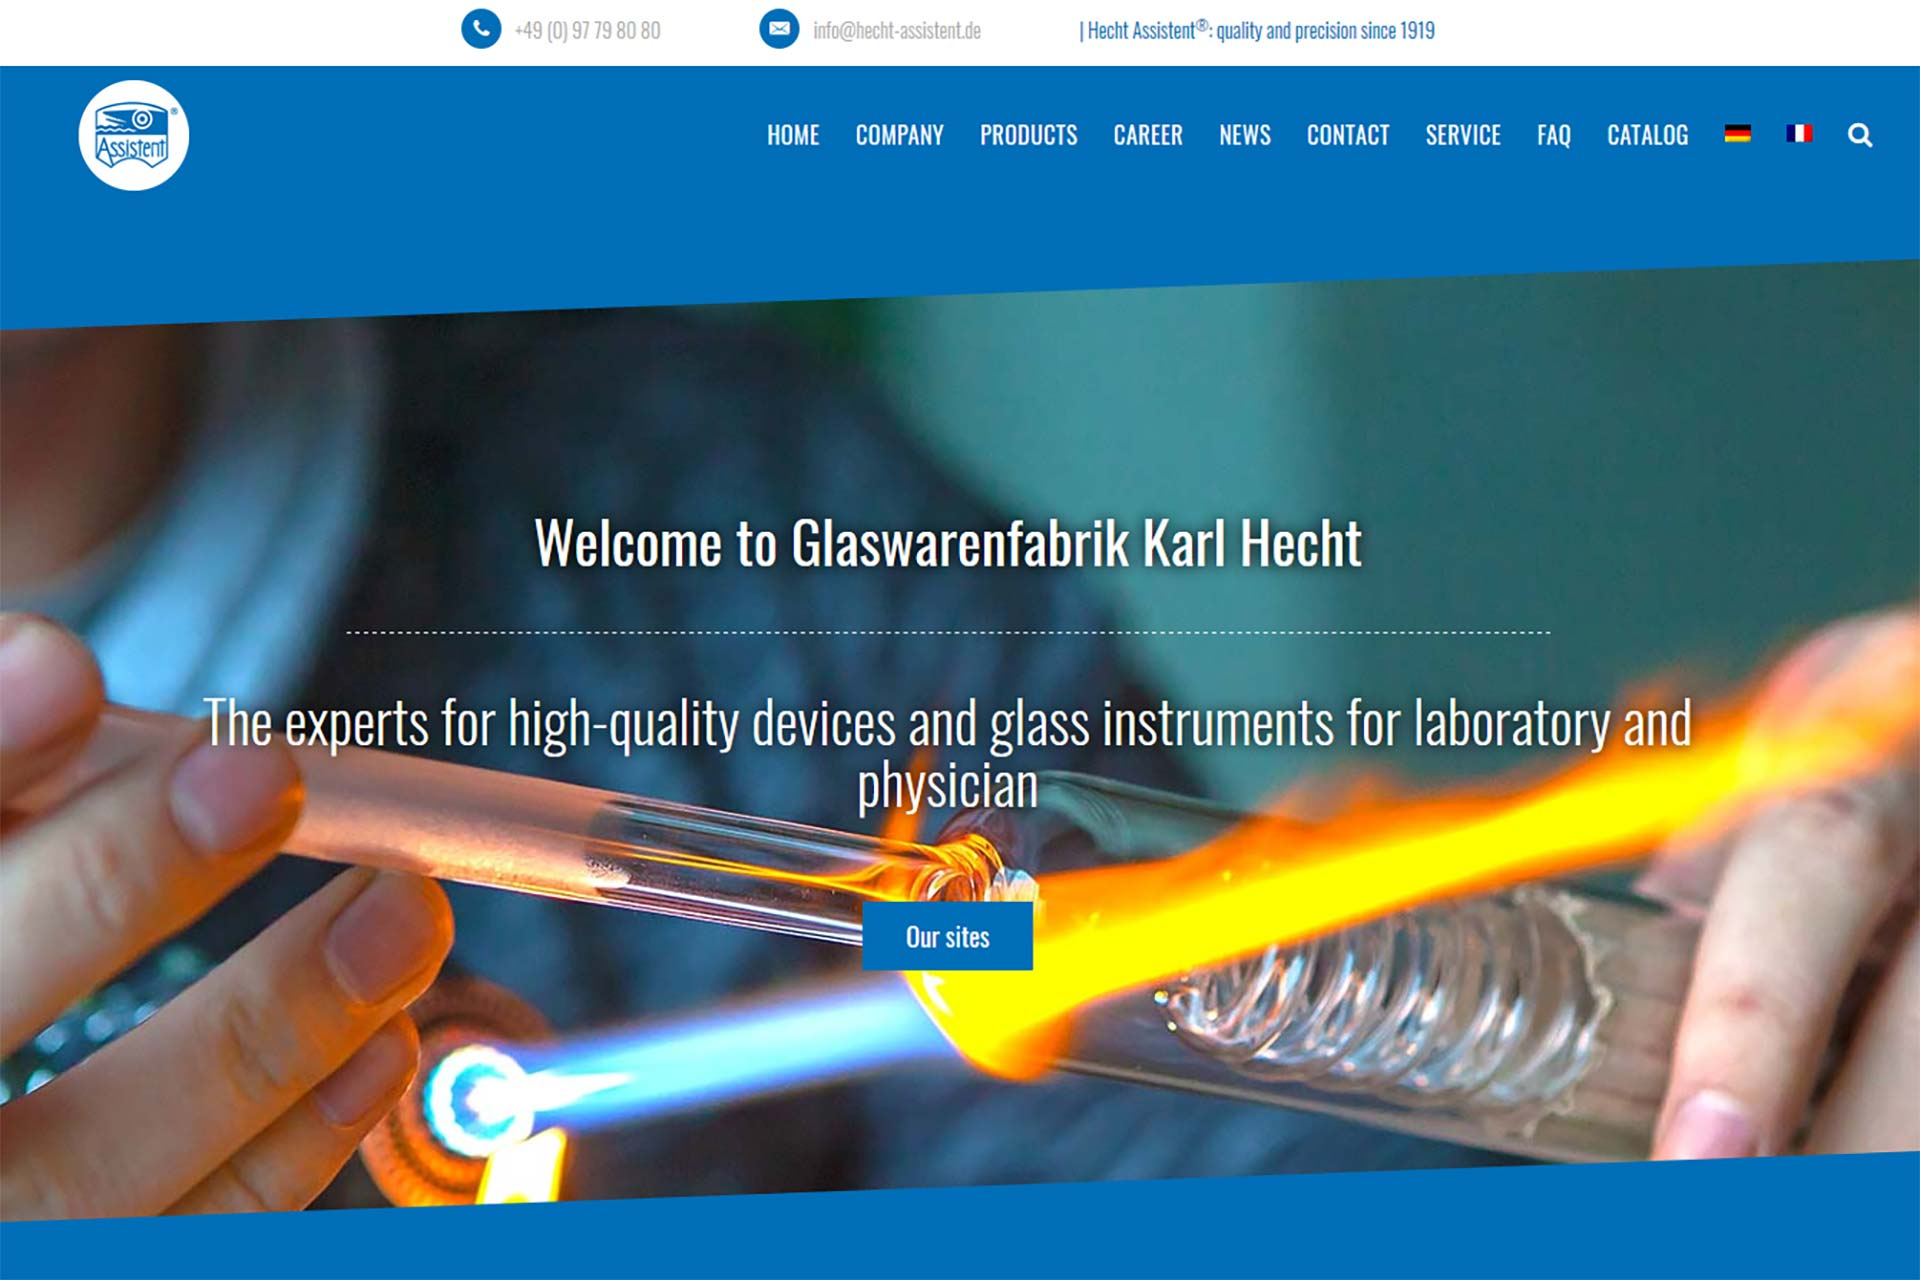 New website of Karl Hecht GmbH & Co KG